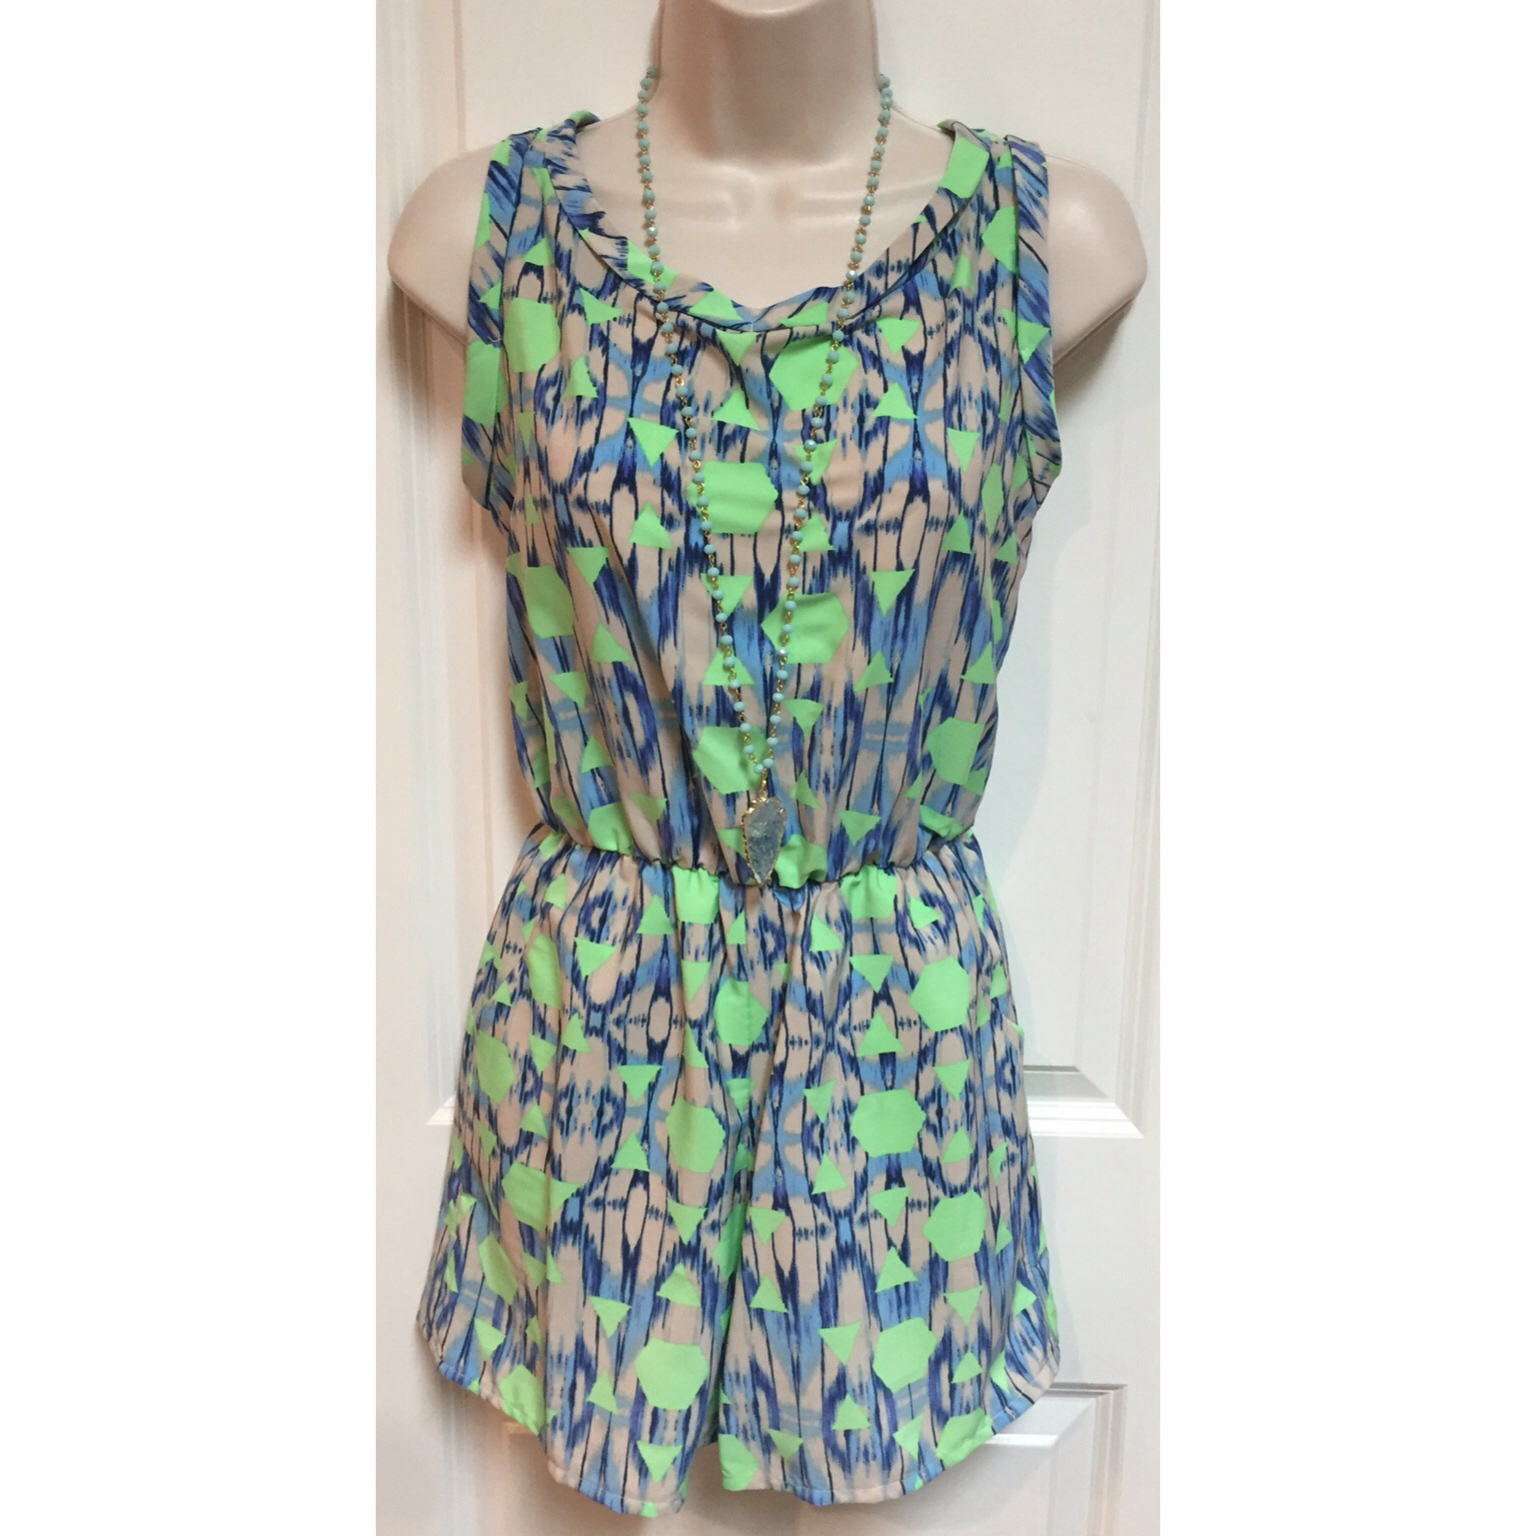 0bad9420d92 Neon Green and Blue Geometric Romper · Jaded Bliss Boutique · Online ...